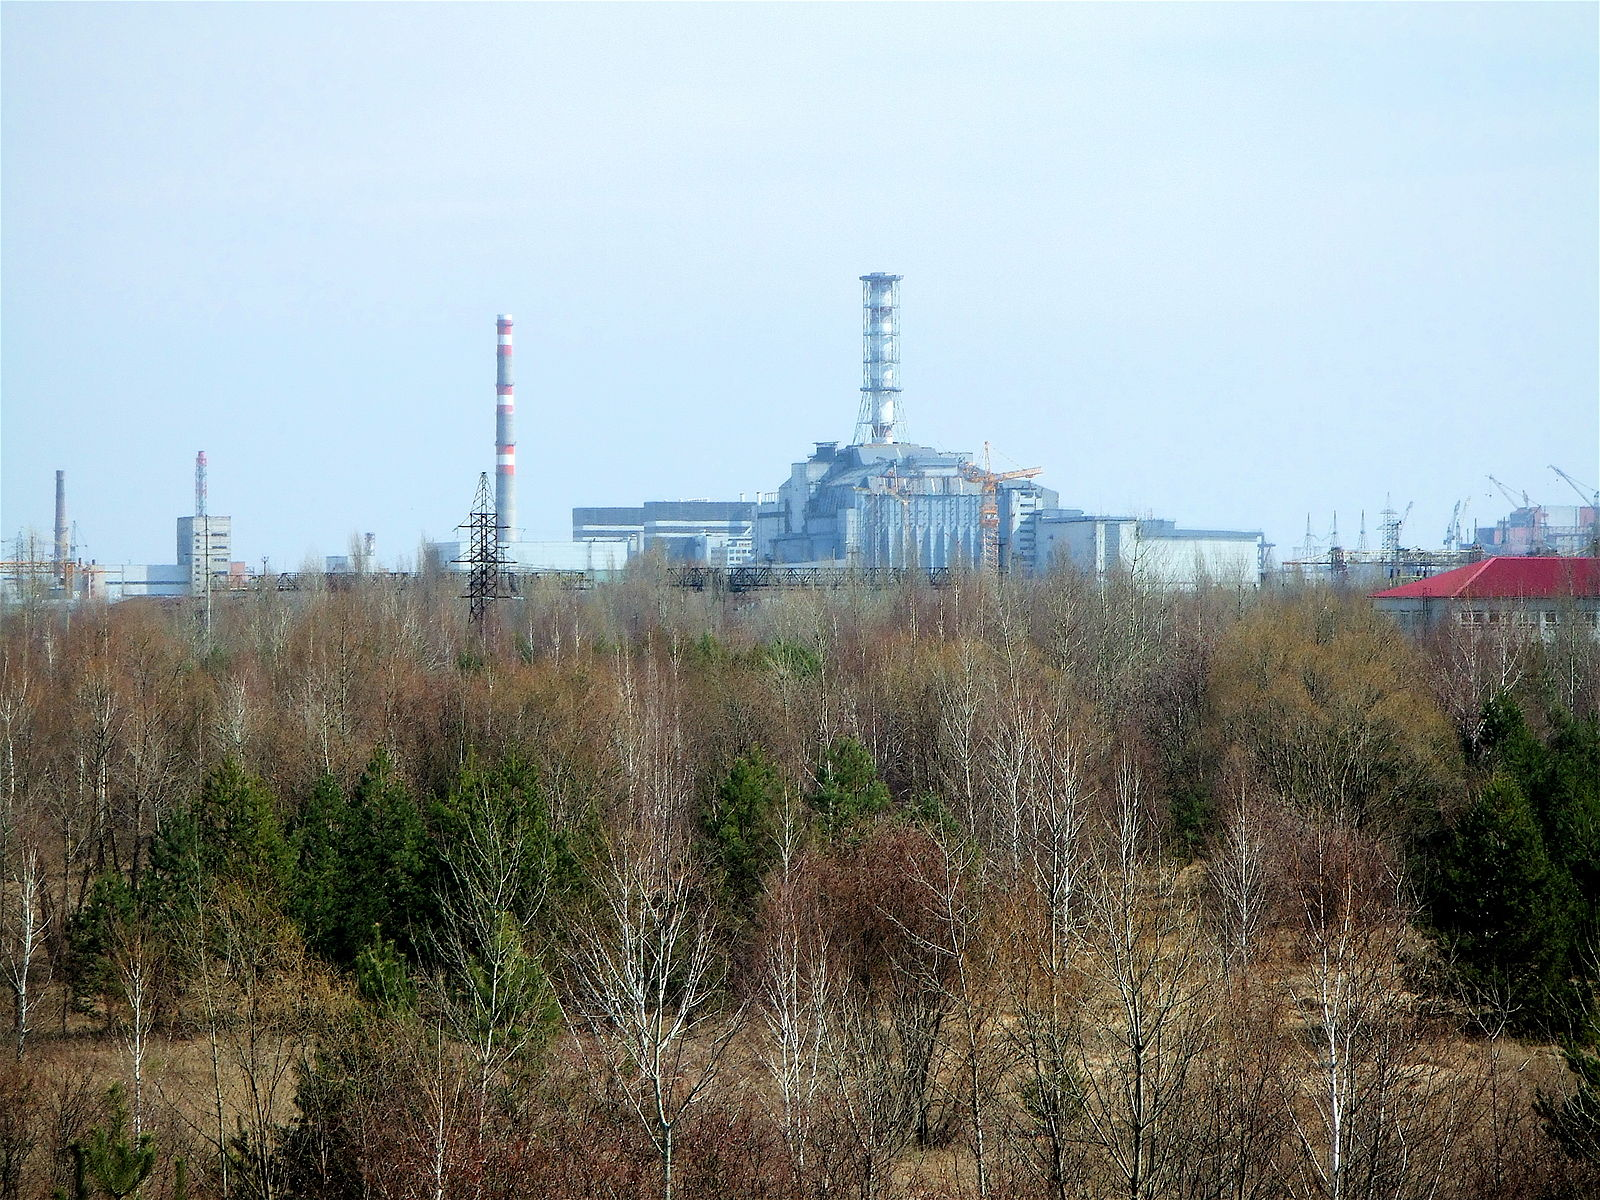 File:Chernobyl Nuclear Power Plant in 2006.jpg